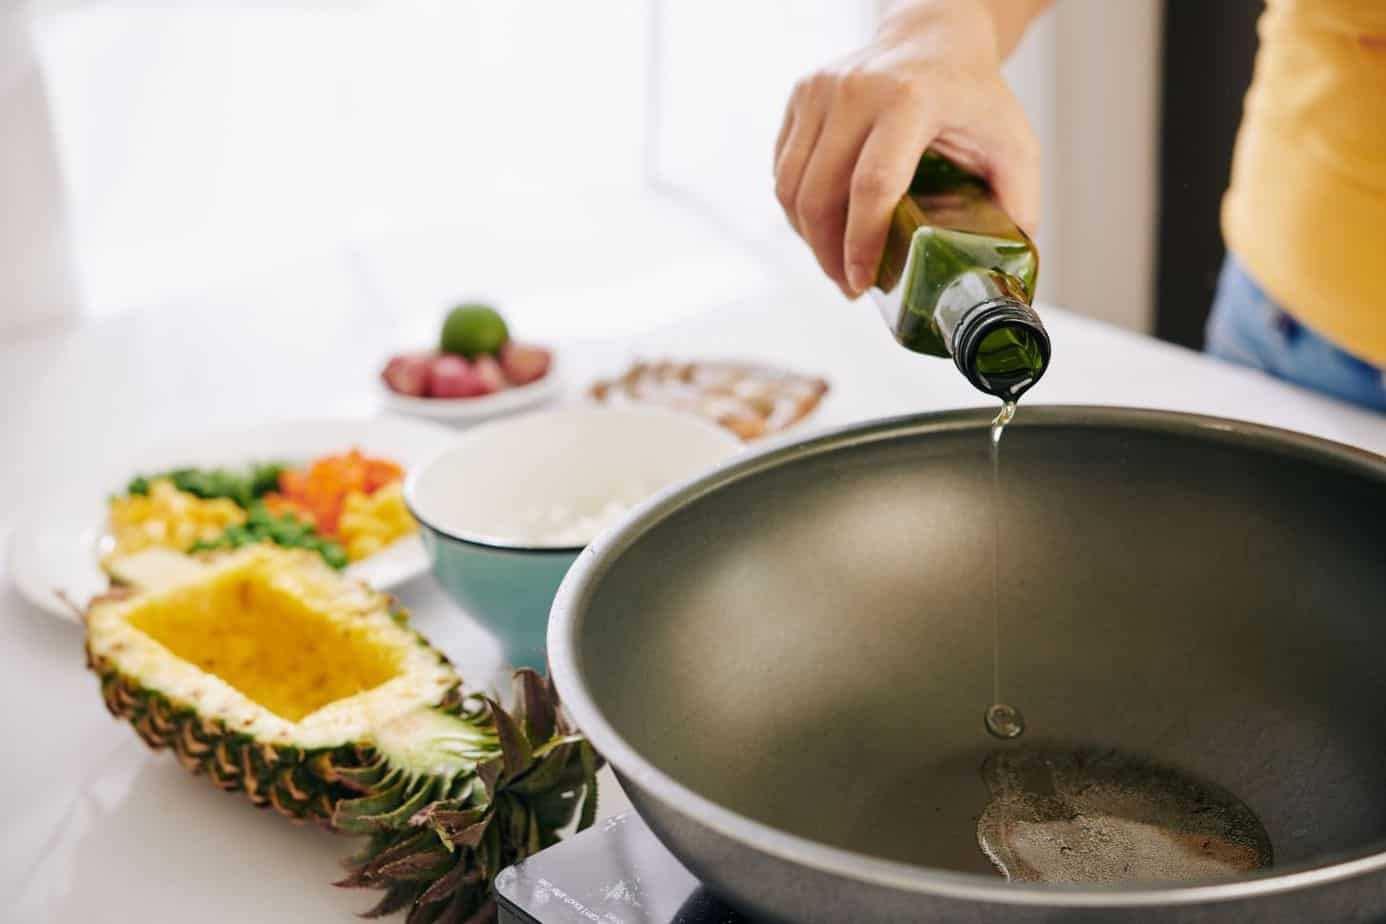 Should I heat pan before adding oil? What is the best olive oil for frying?